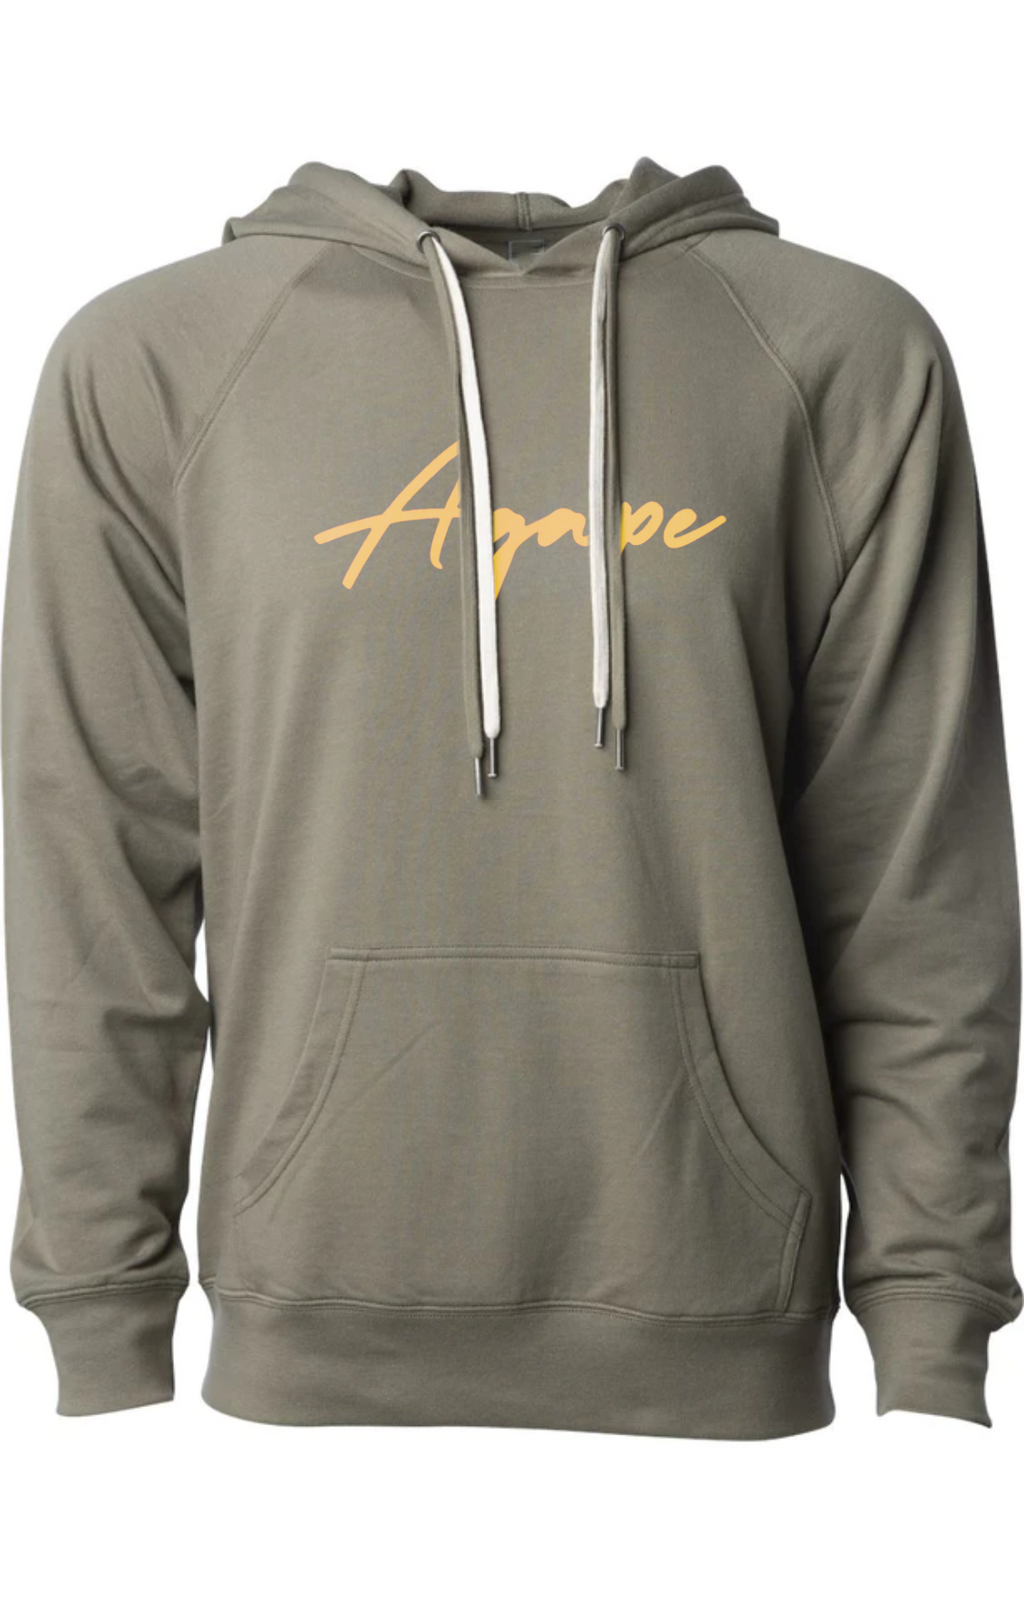 AGAPE gold script fashion hoodie (olive)